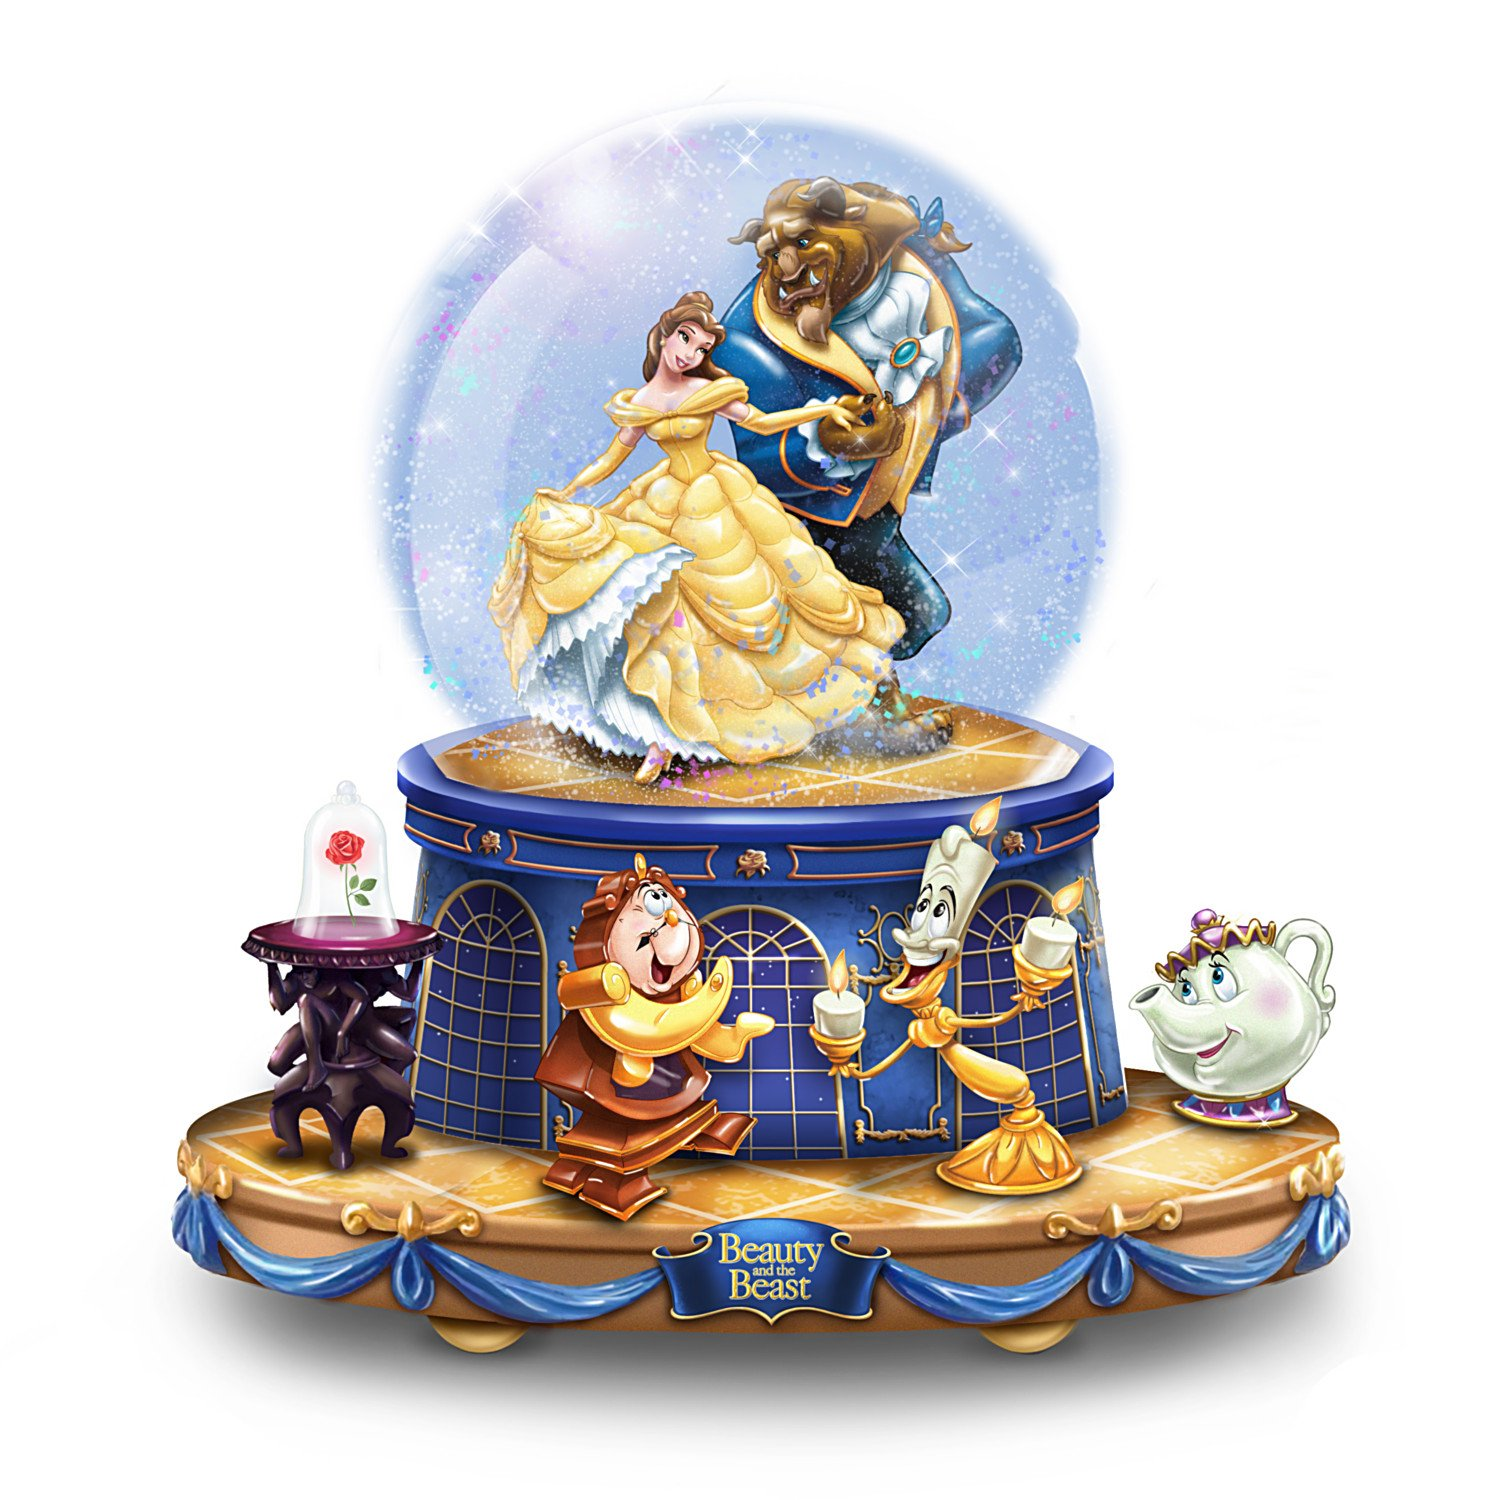 Disney Beauty And The Beast Musical Glitter Globe With Rotating Characters by The Bradford Exchange